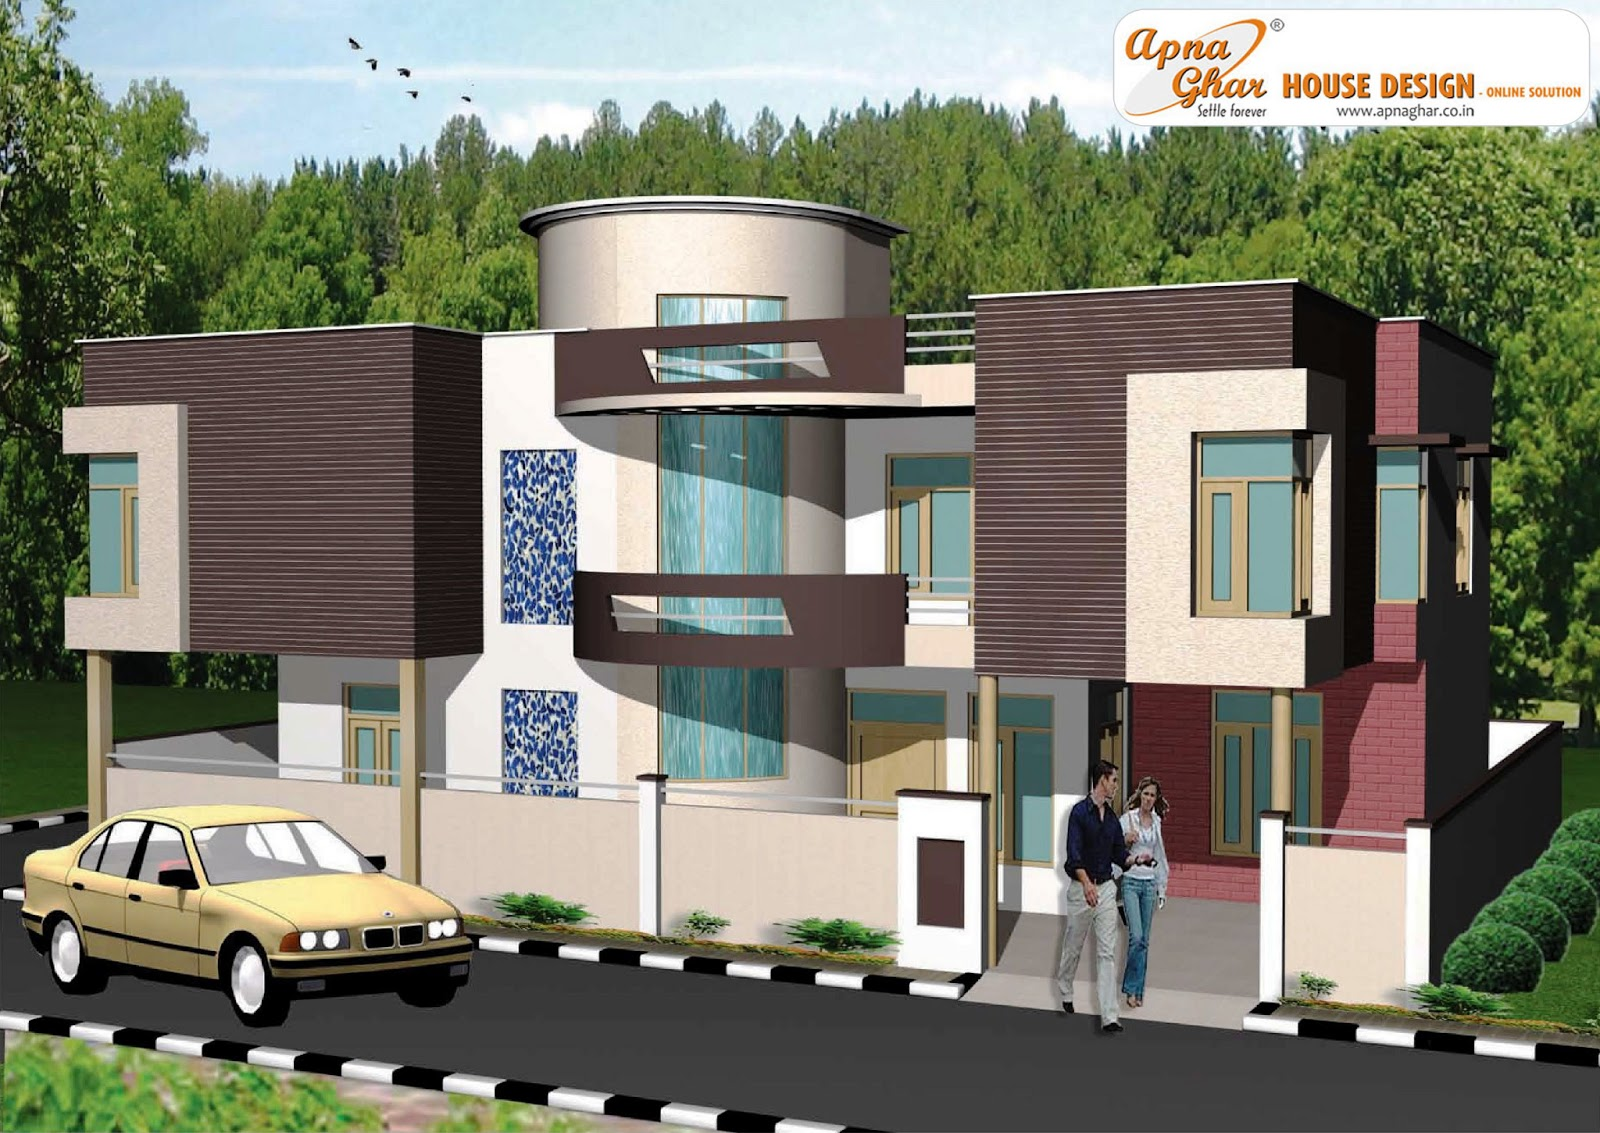 House Plans, House Design, Front Elevation, Costomized House Plan